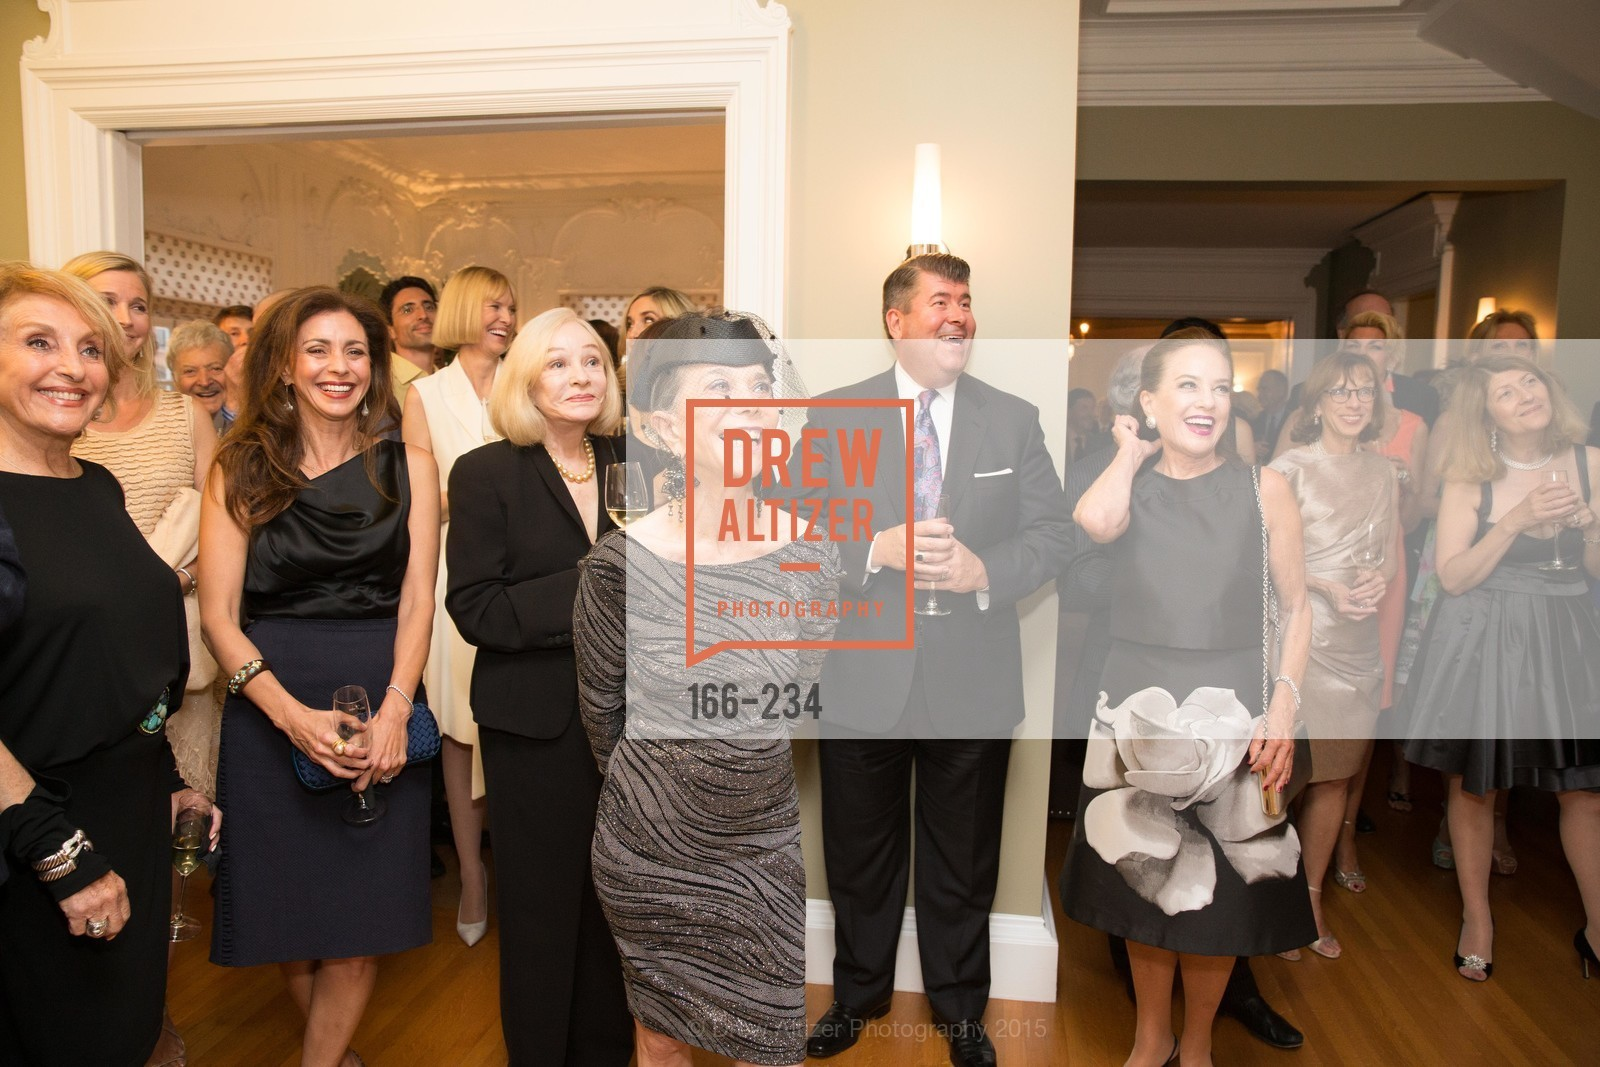 Nazan Orr, Maryam Muduroglu, Gretchen Kimball, Julie Coplon, Alan Morrell, Robin Collins, San Francisco Opera Ball 2015 Patron Party, Private Residence, August 19th, 2015,Drew Altizer, Drew Altizer Photography, full-service agency, private events, San Francisco photographer, photographer california